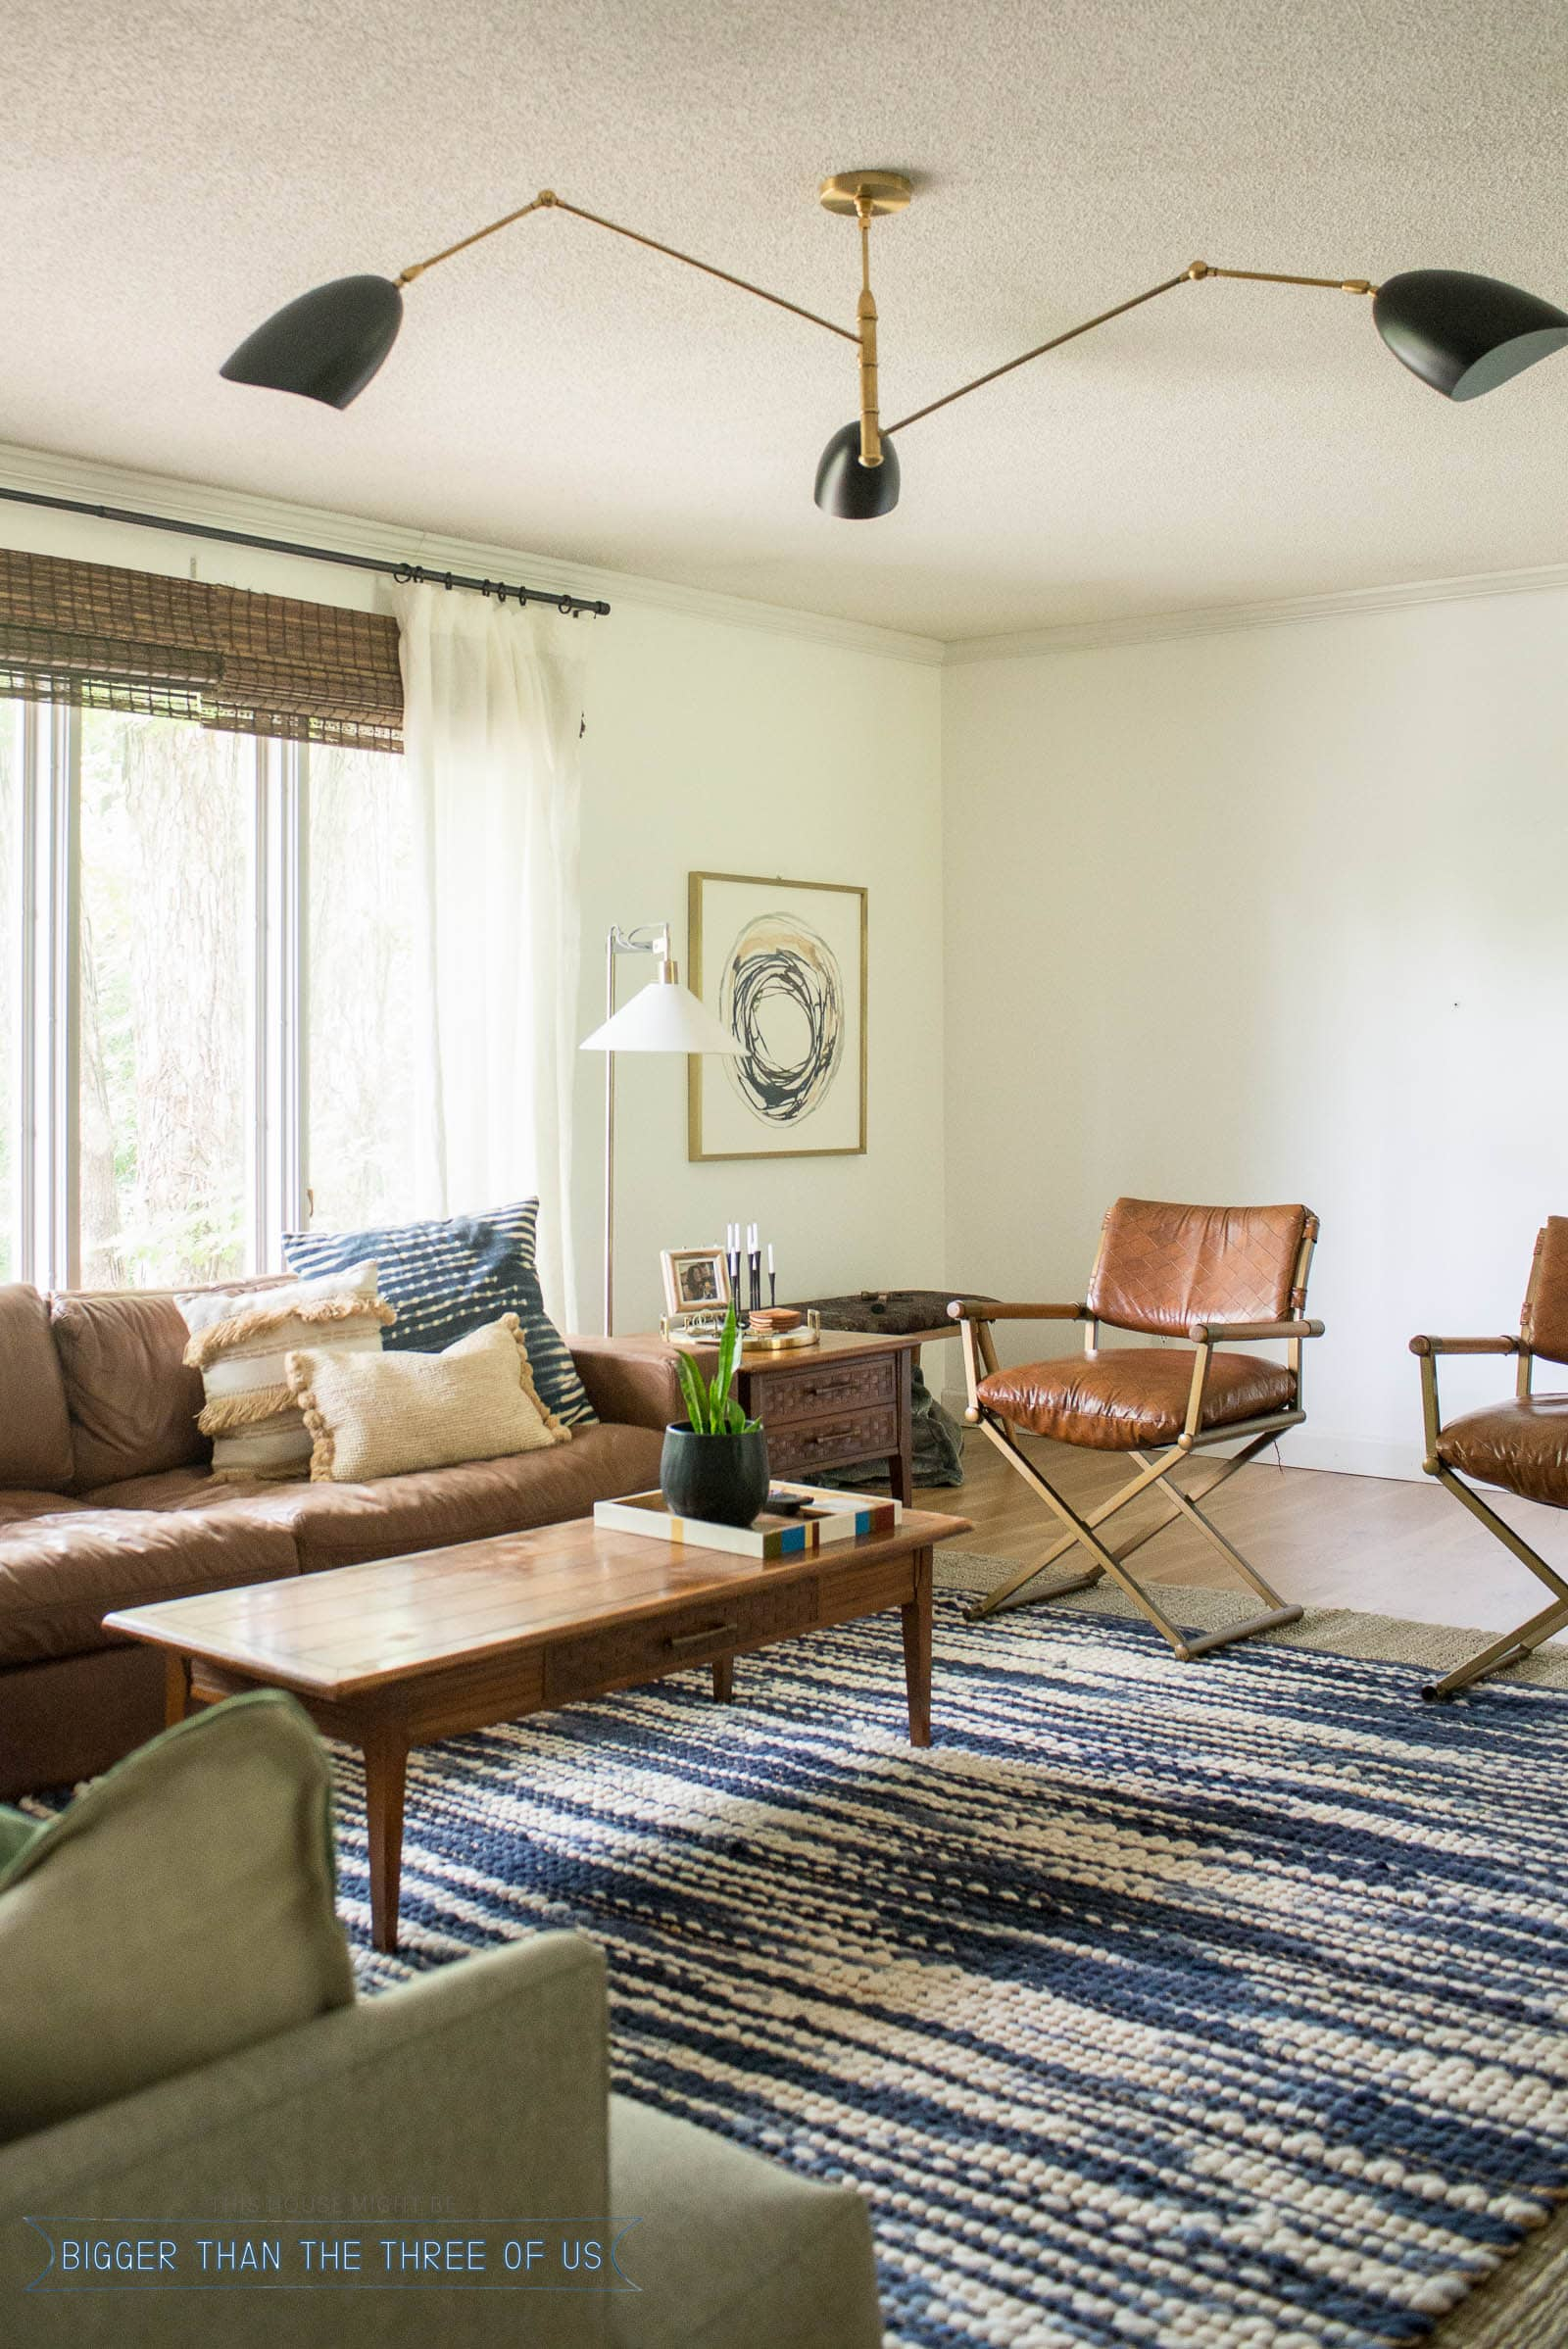 Couch in front of windows in living room. Brown leather couch with blue and white rug and mid-century furniture.